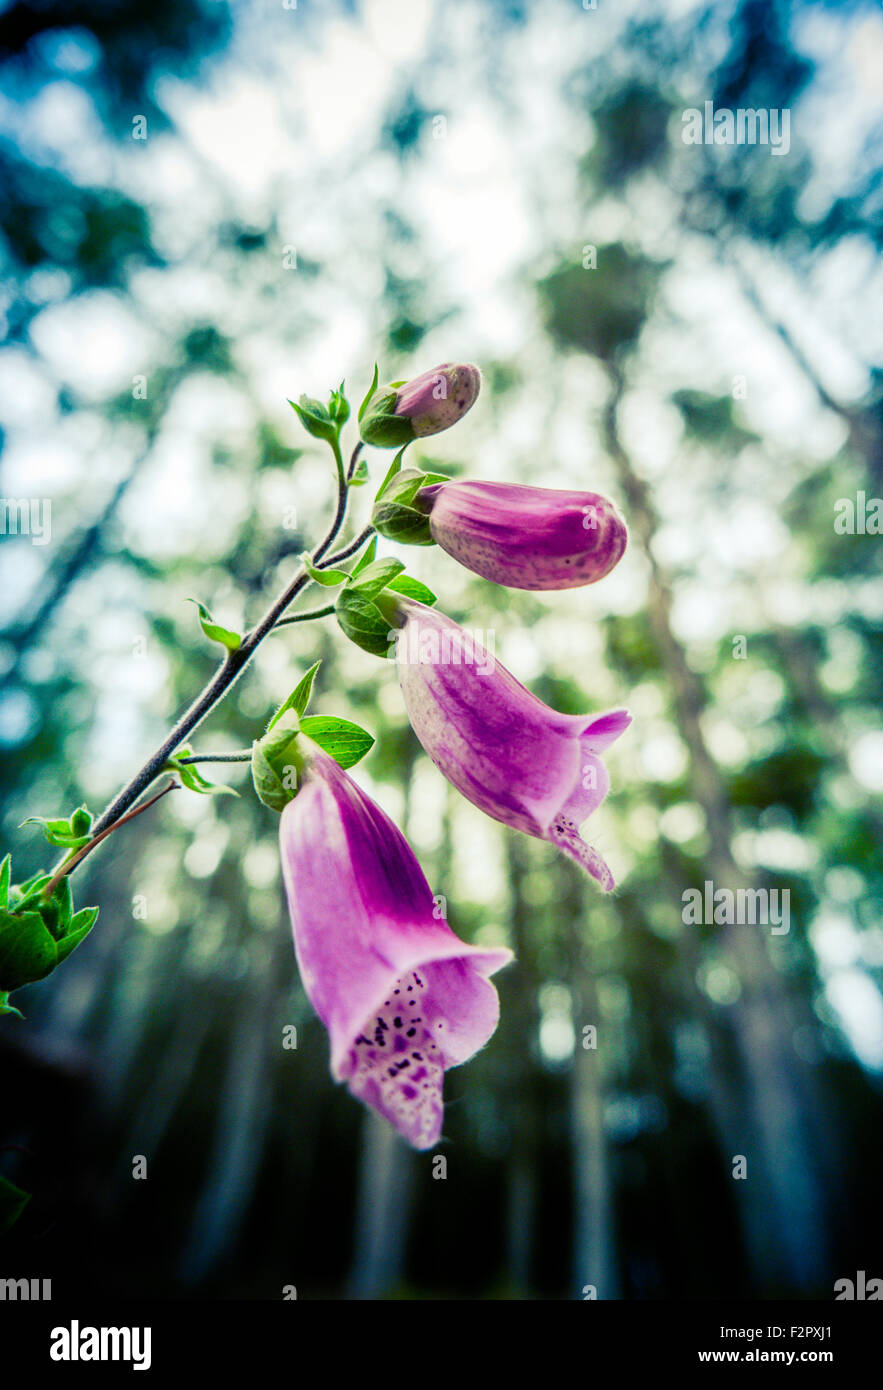 Beautiful Pink Foxglove Flowers In A Forest Setting - Stock Image